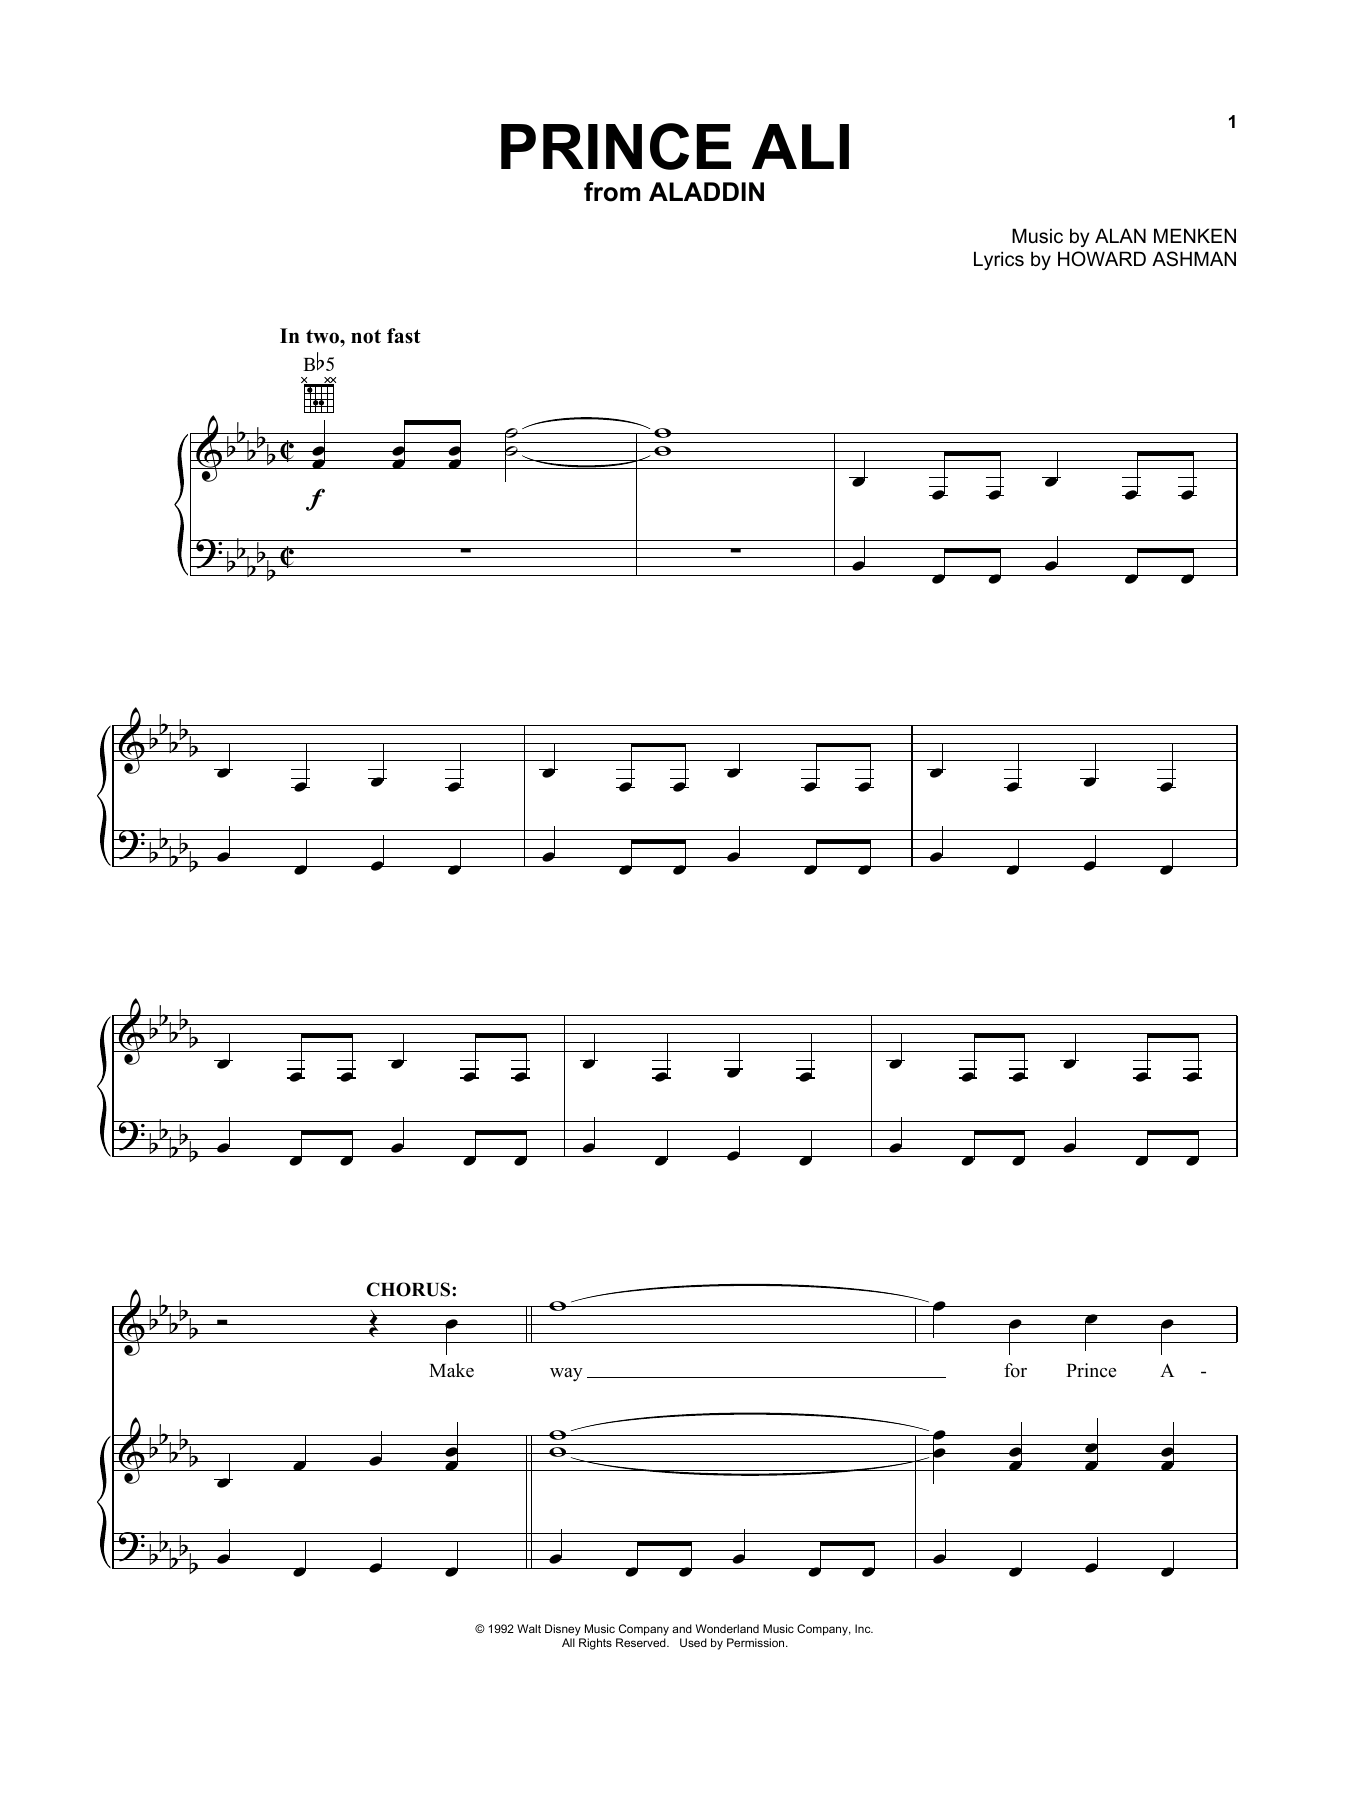 Sheet Music Digital Files To Print Licensed Children Digital Sheet